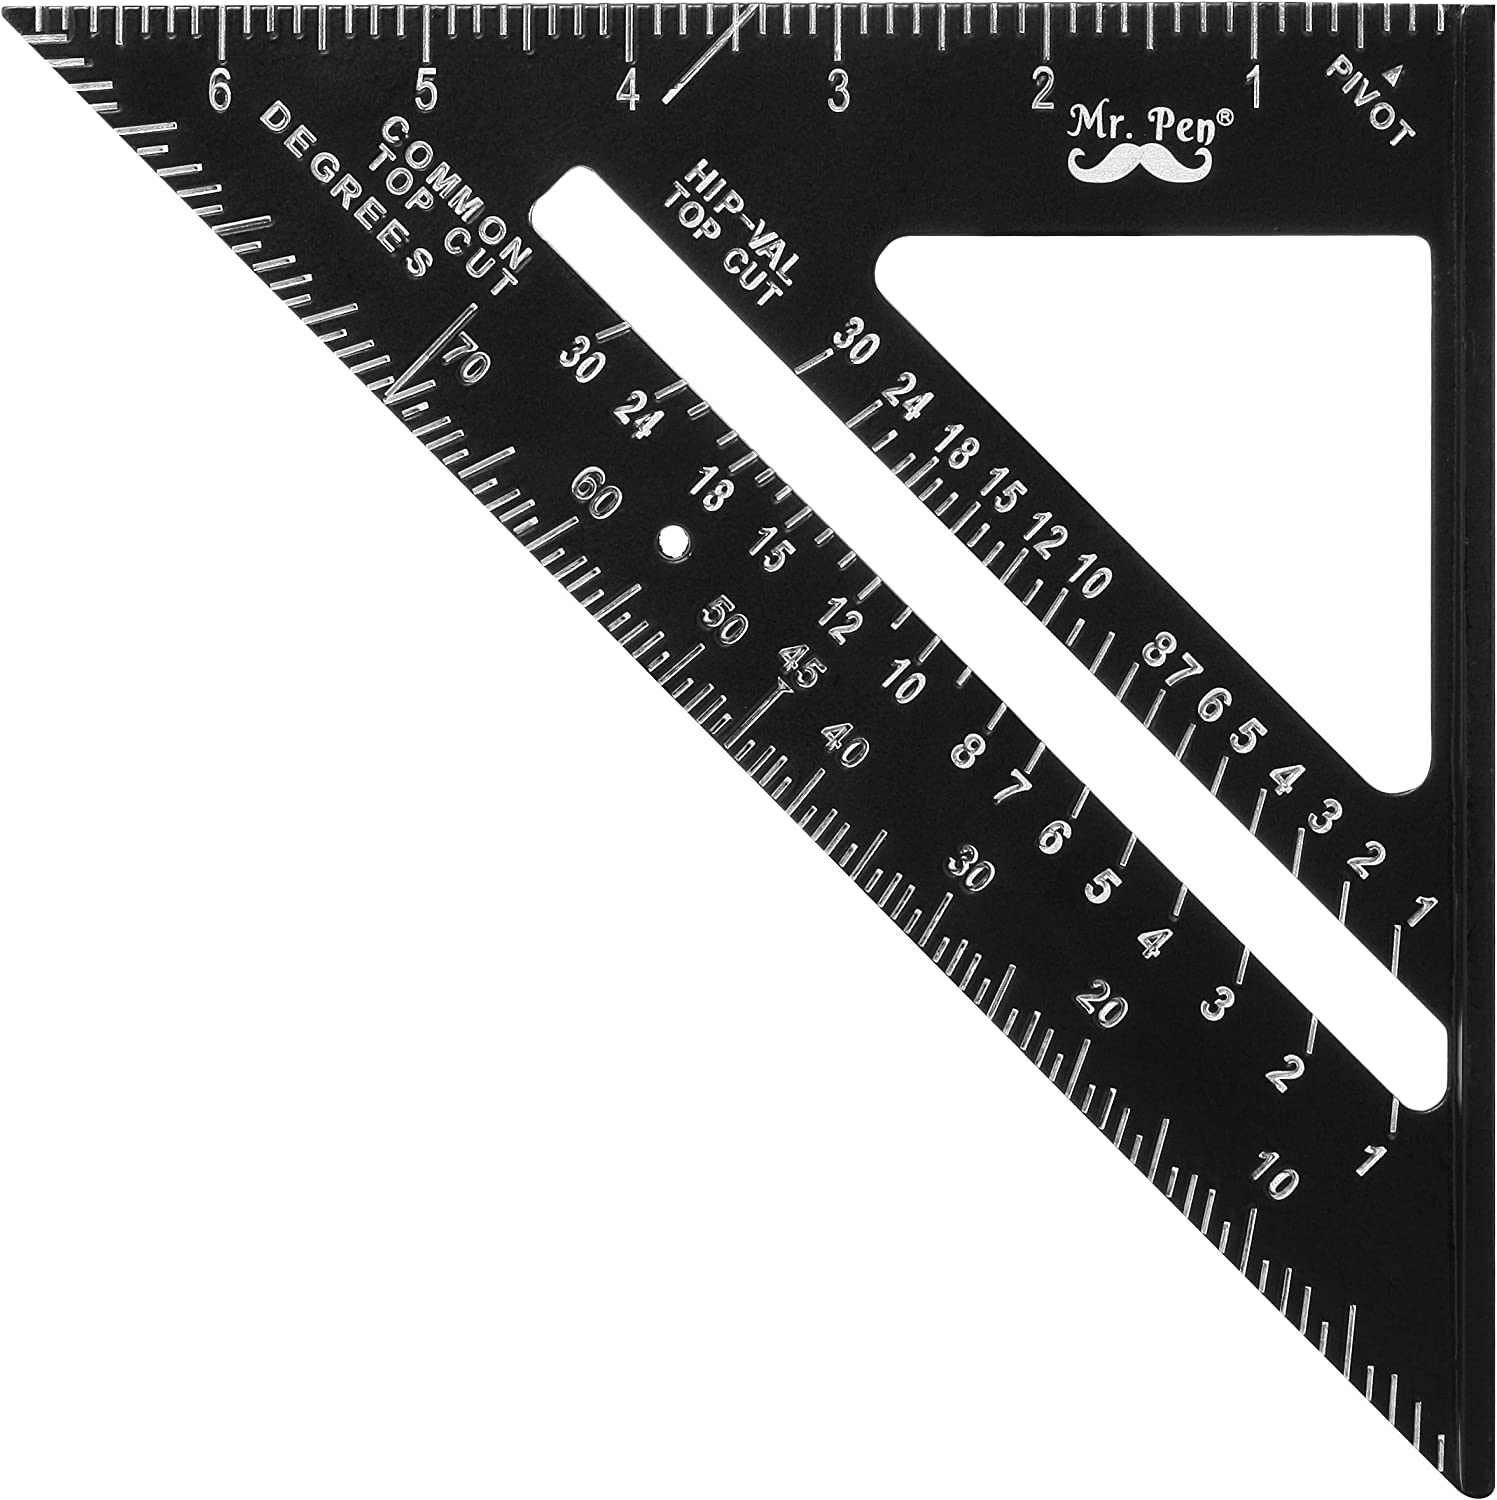 Mr. Pen- Rafter Square, Metal Square, 7 Inch, Carpenters Square, Square Tool, Metal Square Ruler, Carpentry Squares, Woodworking Square, Square Angle Tool, Aluminum Rafter Square, Carpenter Square